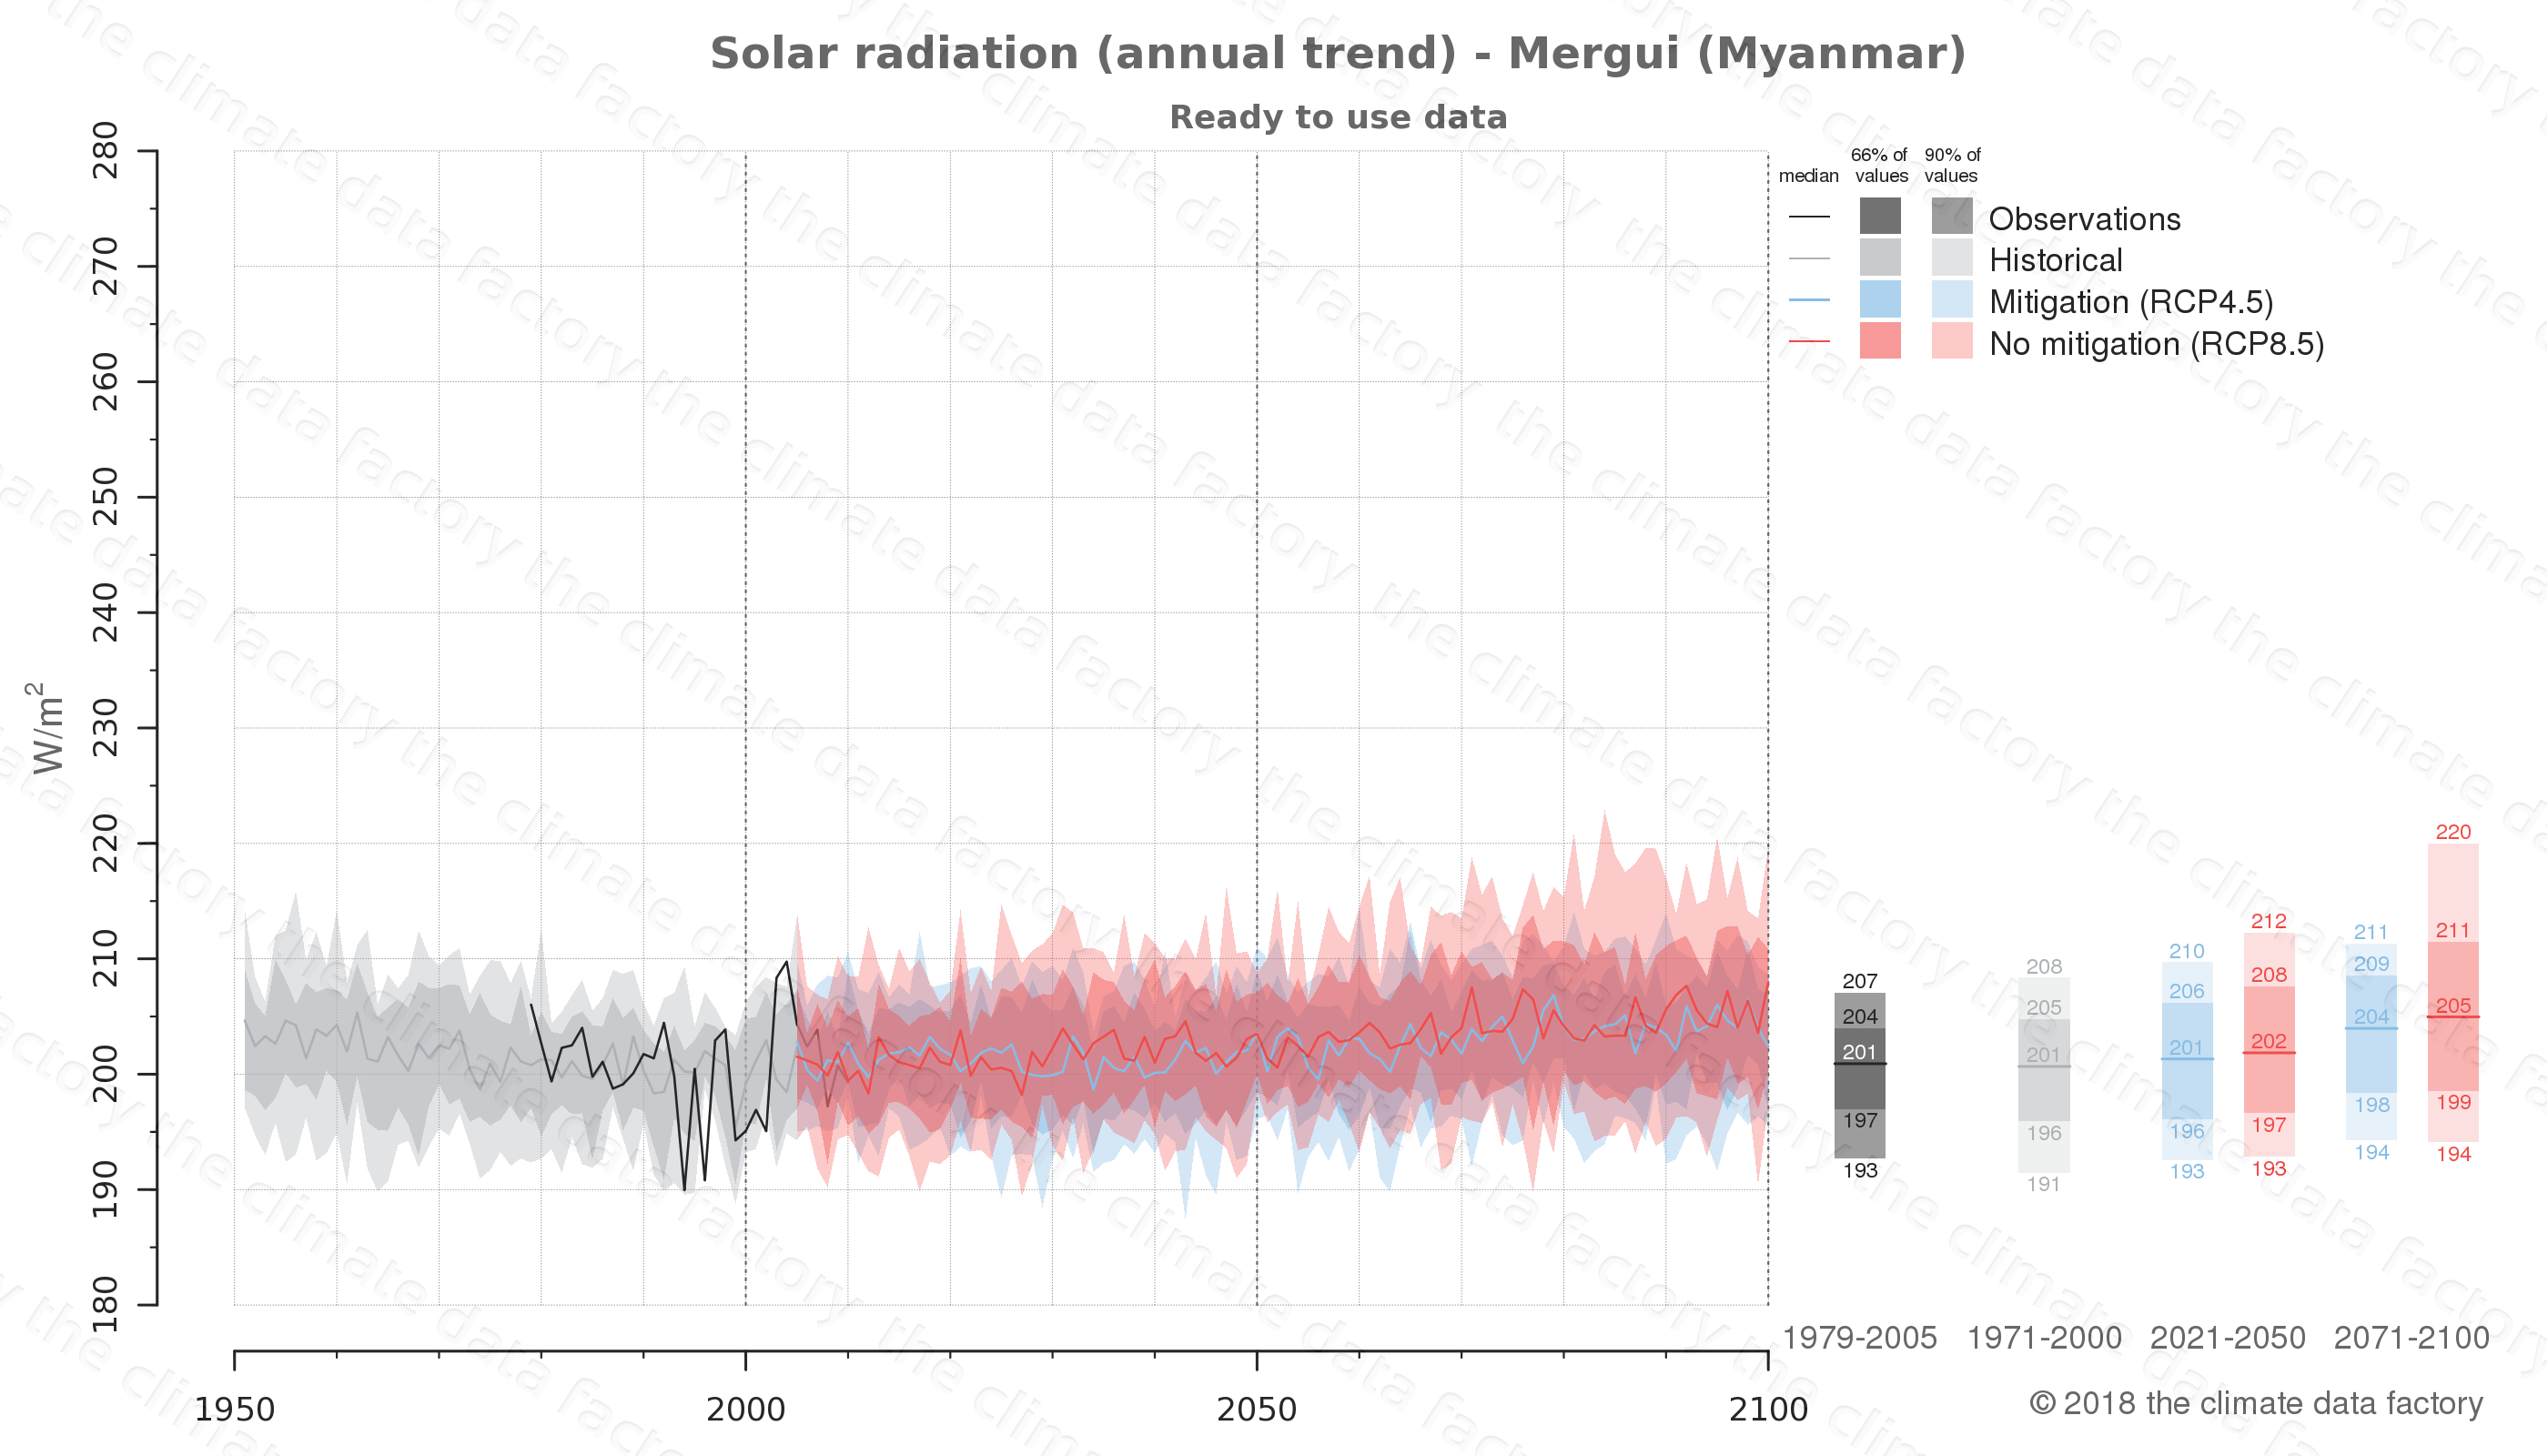 climate change data policy adaptation climate graph city data solar-radiation mergui myanmar